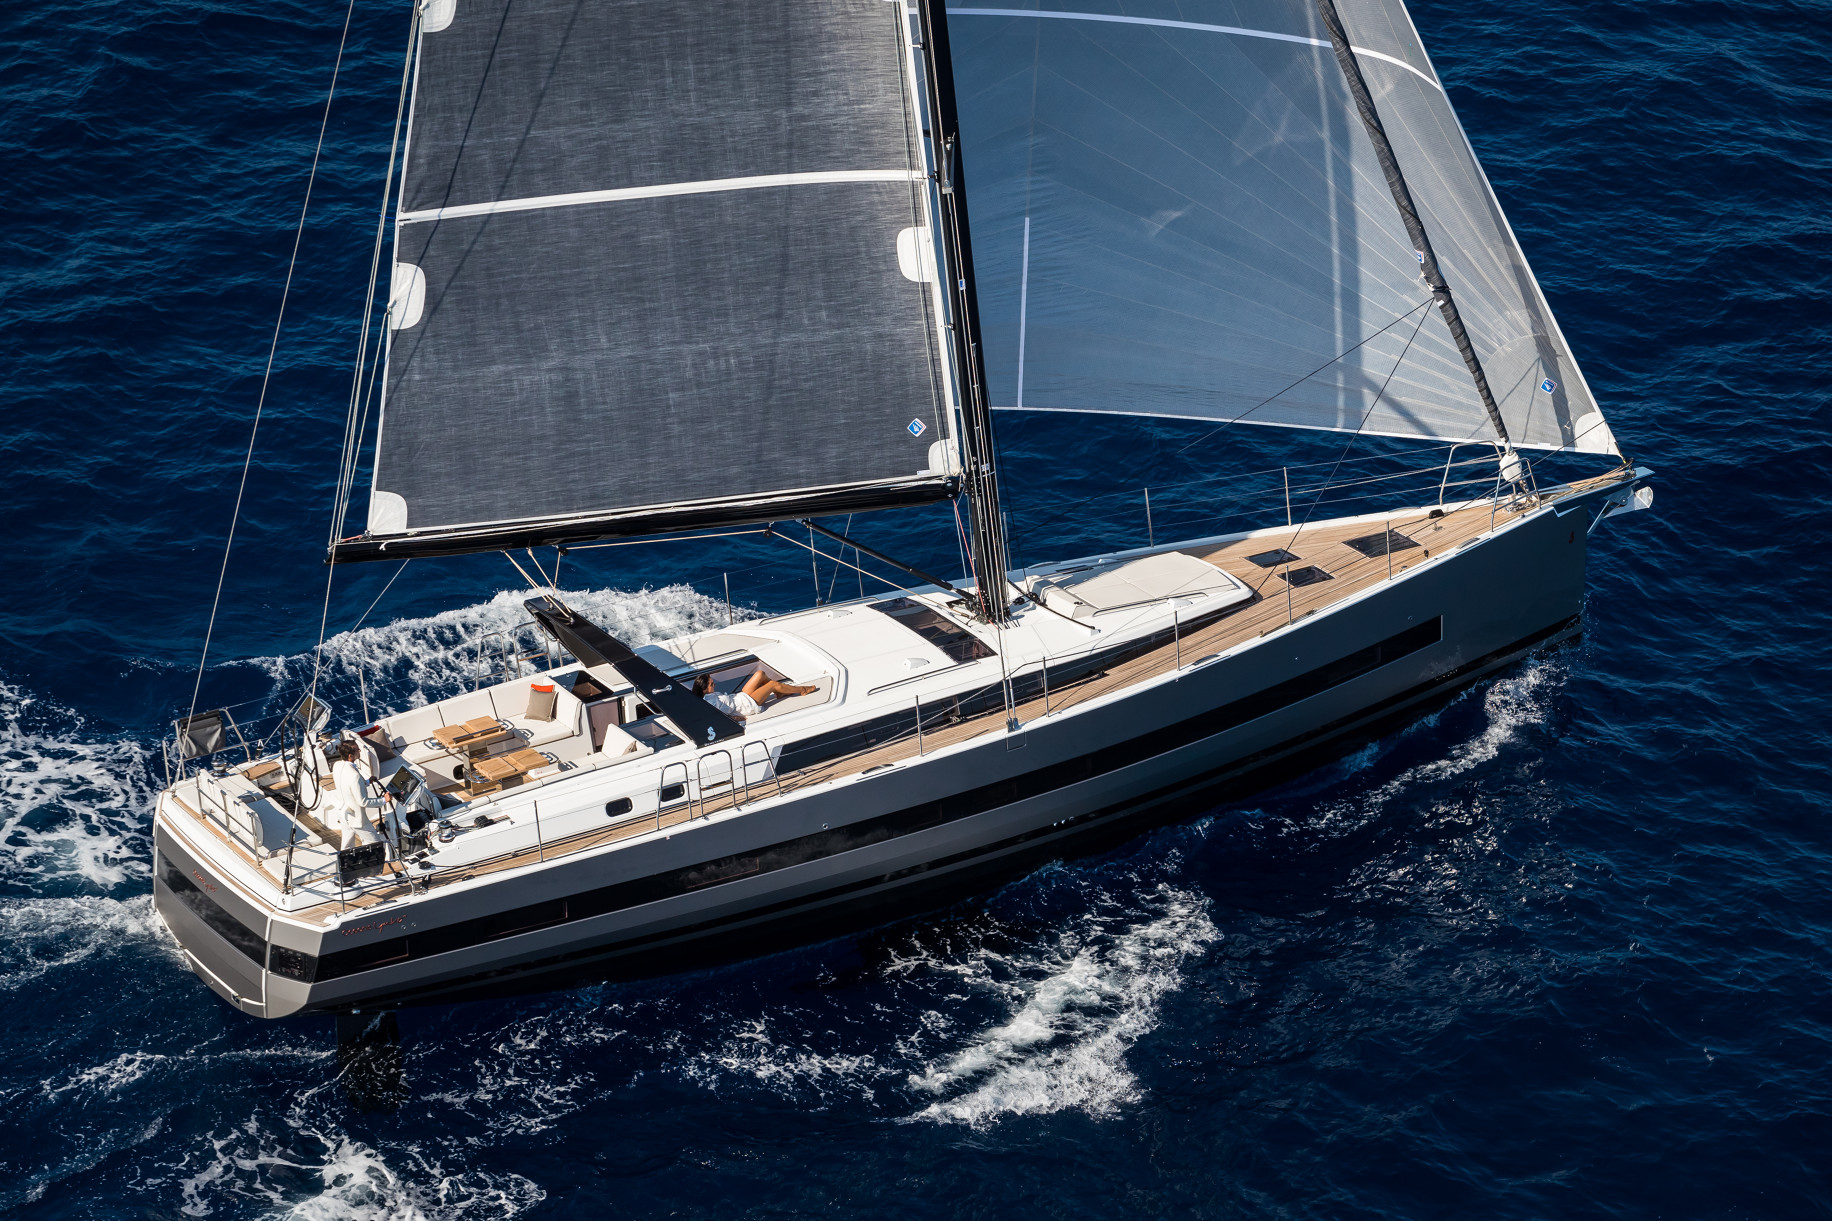 Isle Porquerolles, France, 28 september 2016.The all new Oceanis Yacht 62 By Beneteau.Ph: Guido Cantini / Sea&See